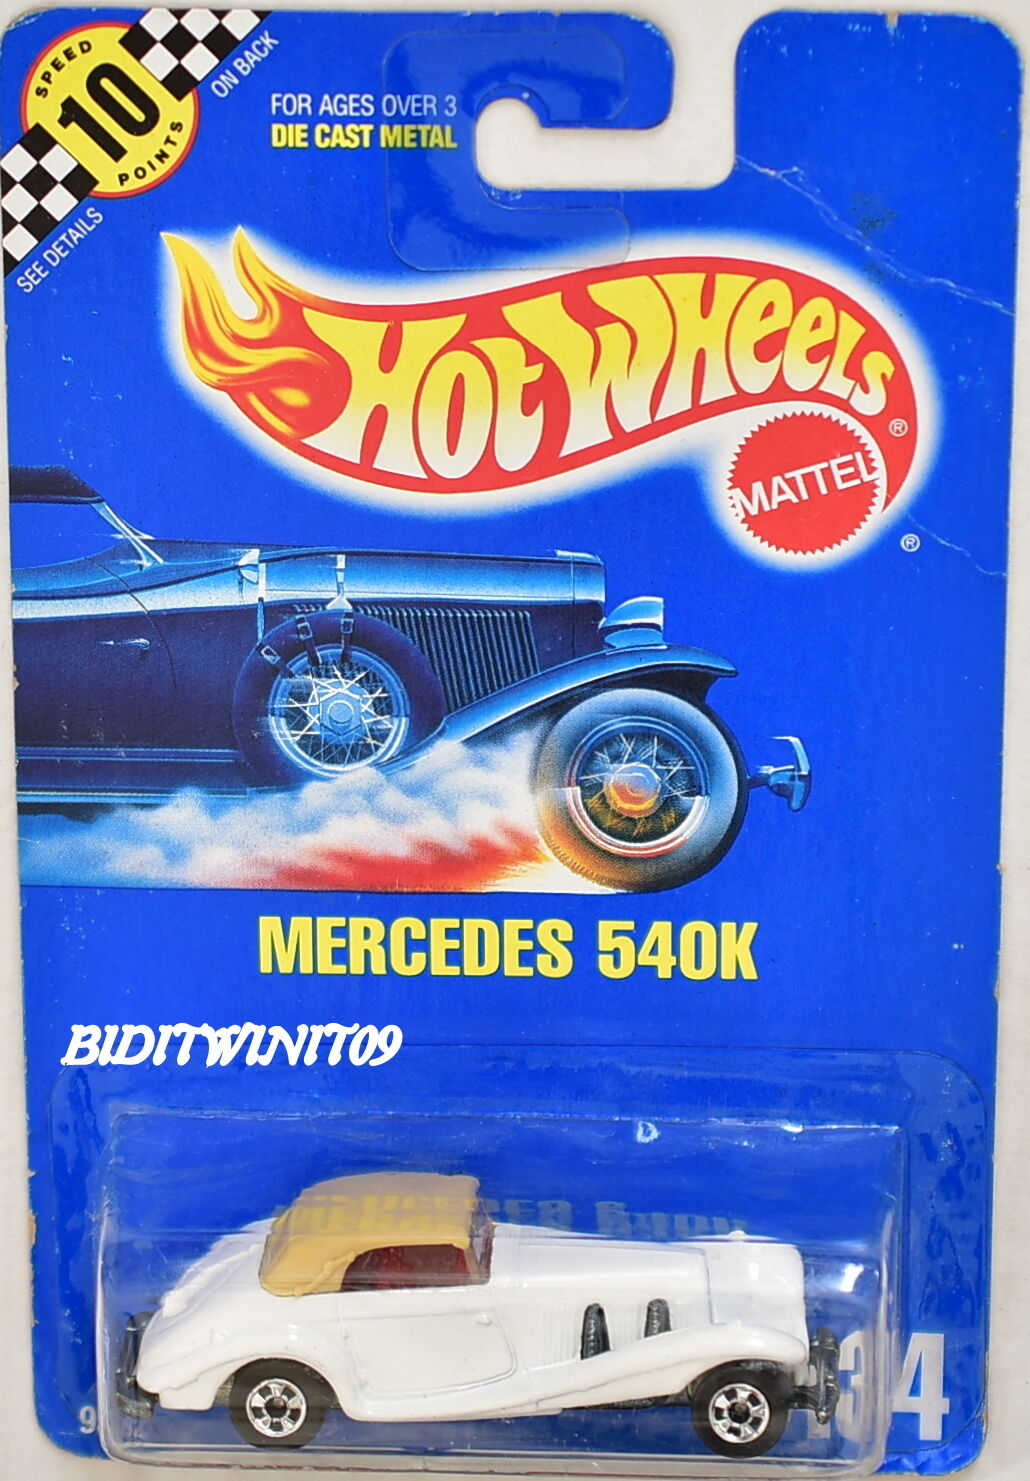 HOT WHEELS 1990 blueE CARD MERCEDES 540K WHITE NO GRILL - ERROR W+